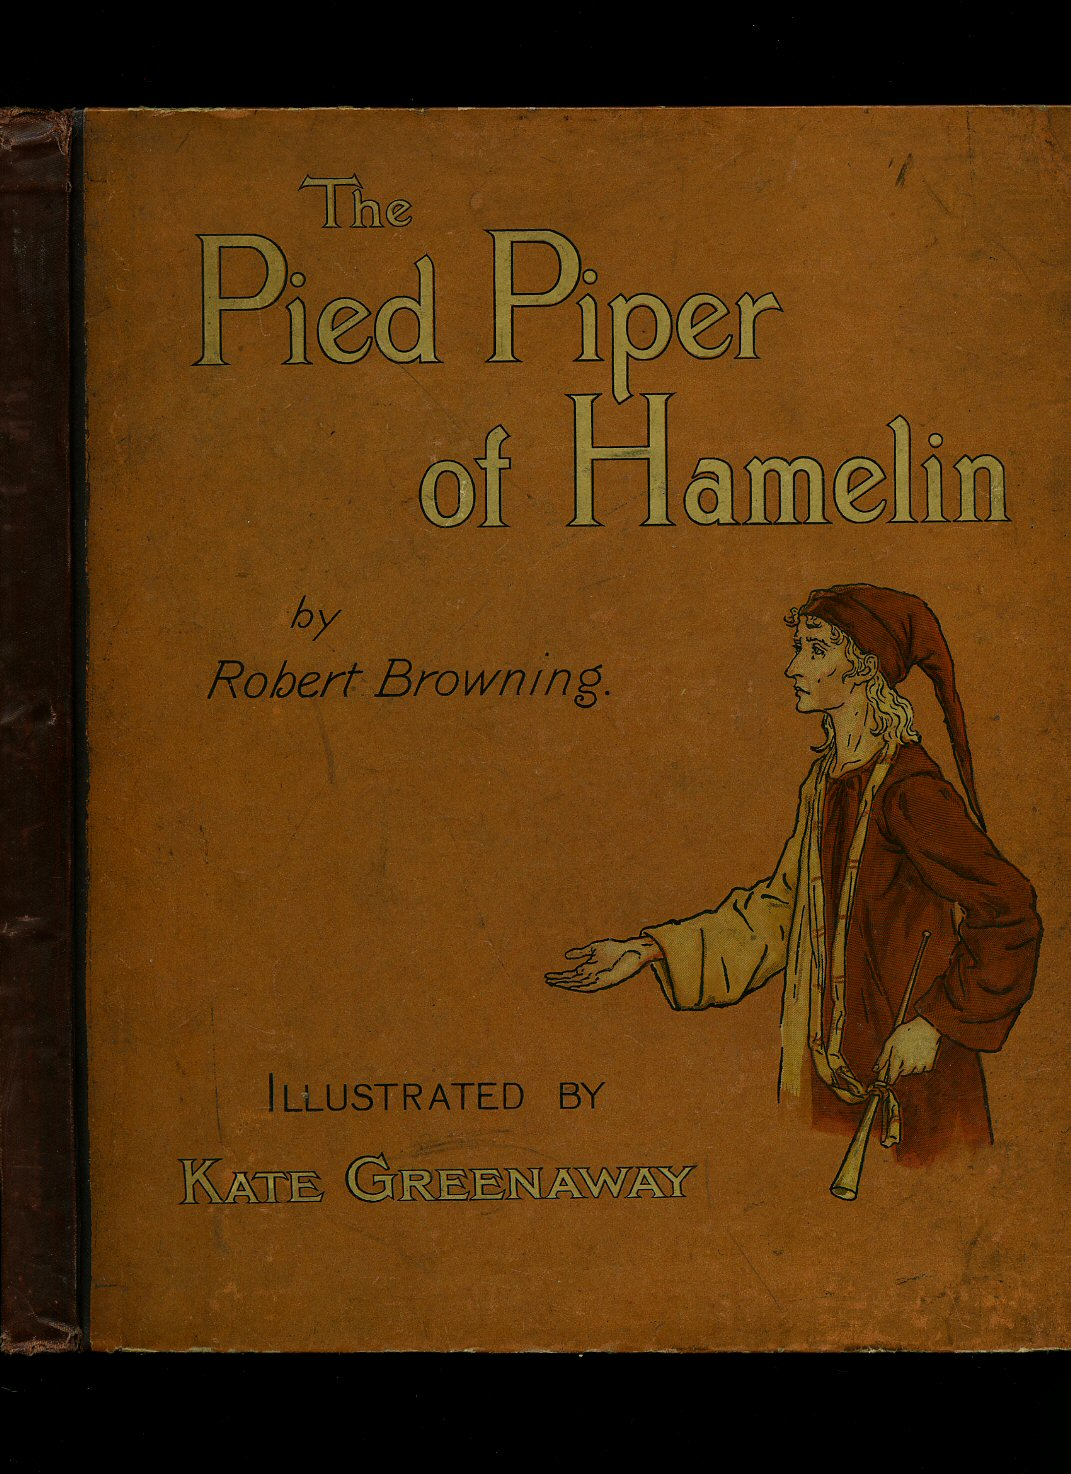 BROWNING, ROBERT [ROBERT BROWNING (7 MAY 1812 - 12 DECEMBER 1889) WAS AN ENGLISH POET AND PLAYWRIGHT WHOSE MASTERY OF DRAMATIC VERSE, AND IN PARTICULAR THE DRAMATIC MONOLOGUE, MADE HIM ONE OF THE FOREMOST VICTORIAN POETS. ILLUSTRATED BY KATE GREENAWAY [18 - The Pied Piper of Hamelin